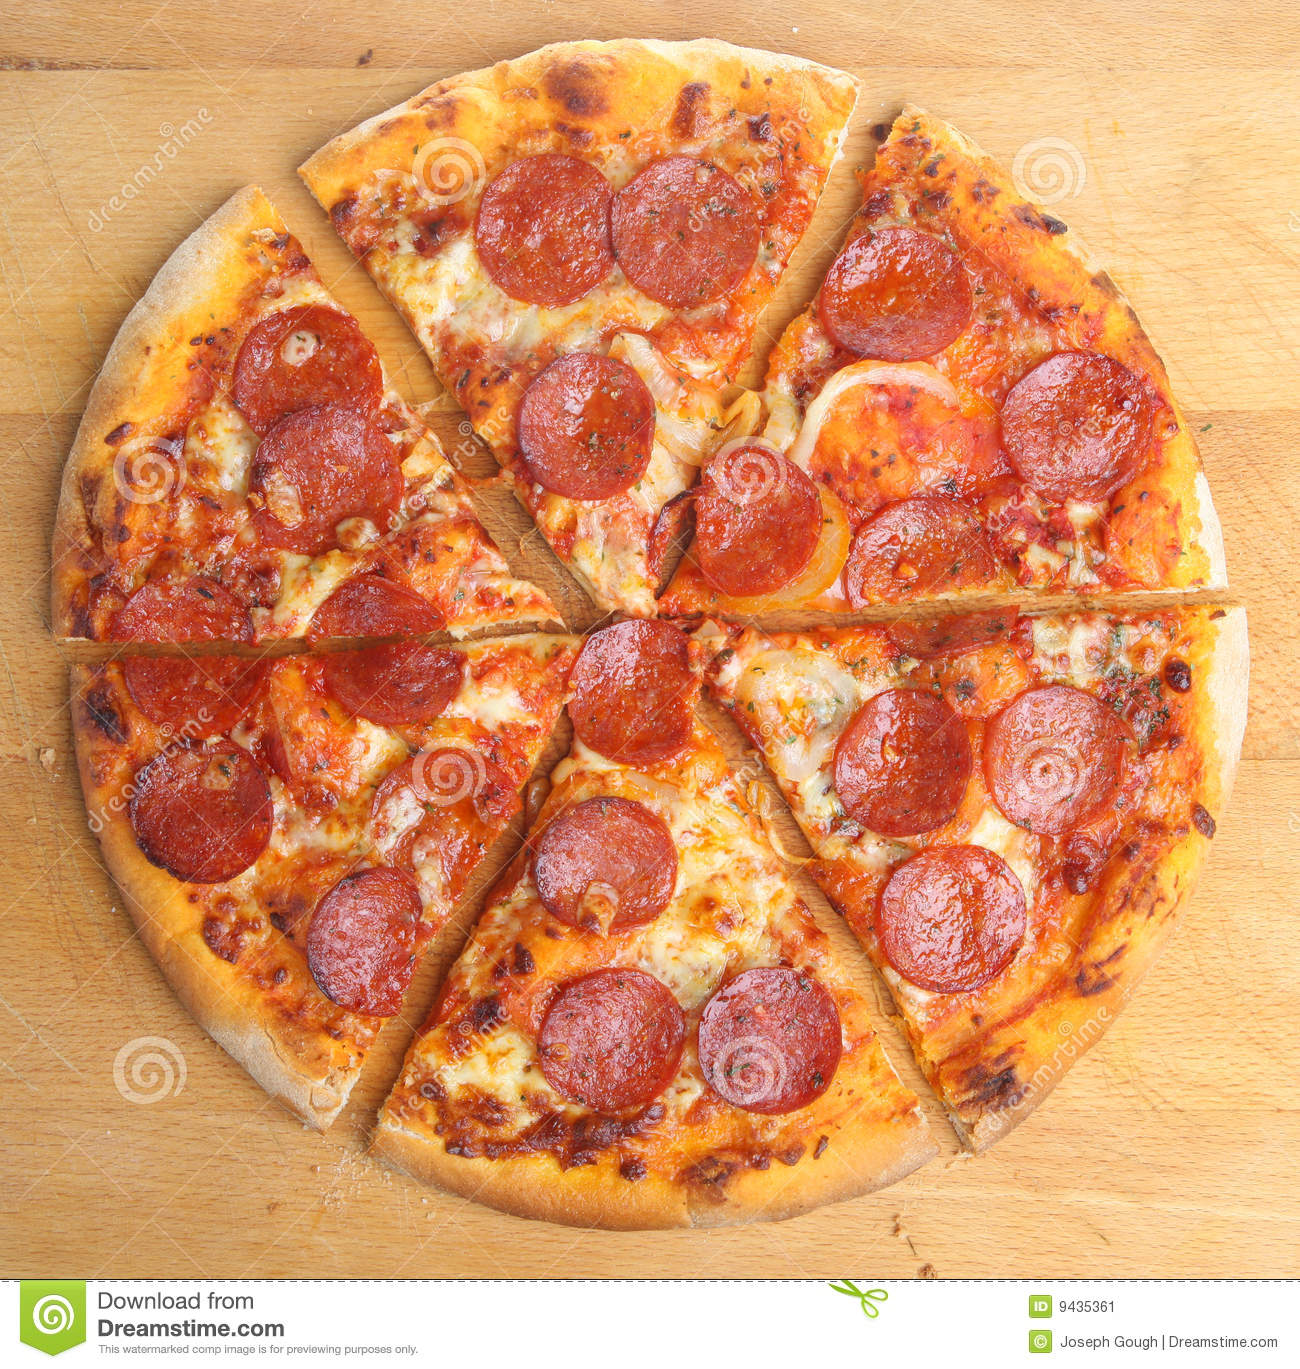 Pepperoni Pizza Slices Stock Image - Image: 9435361